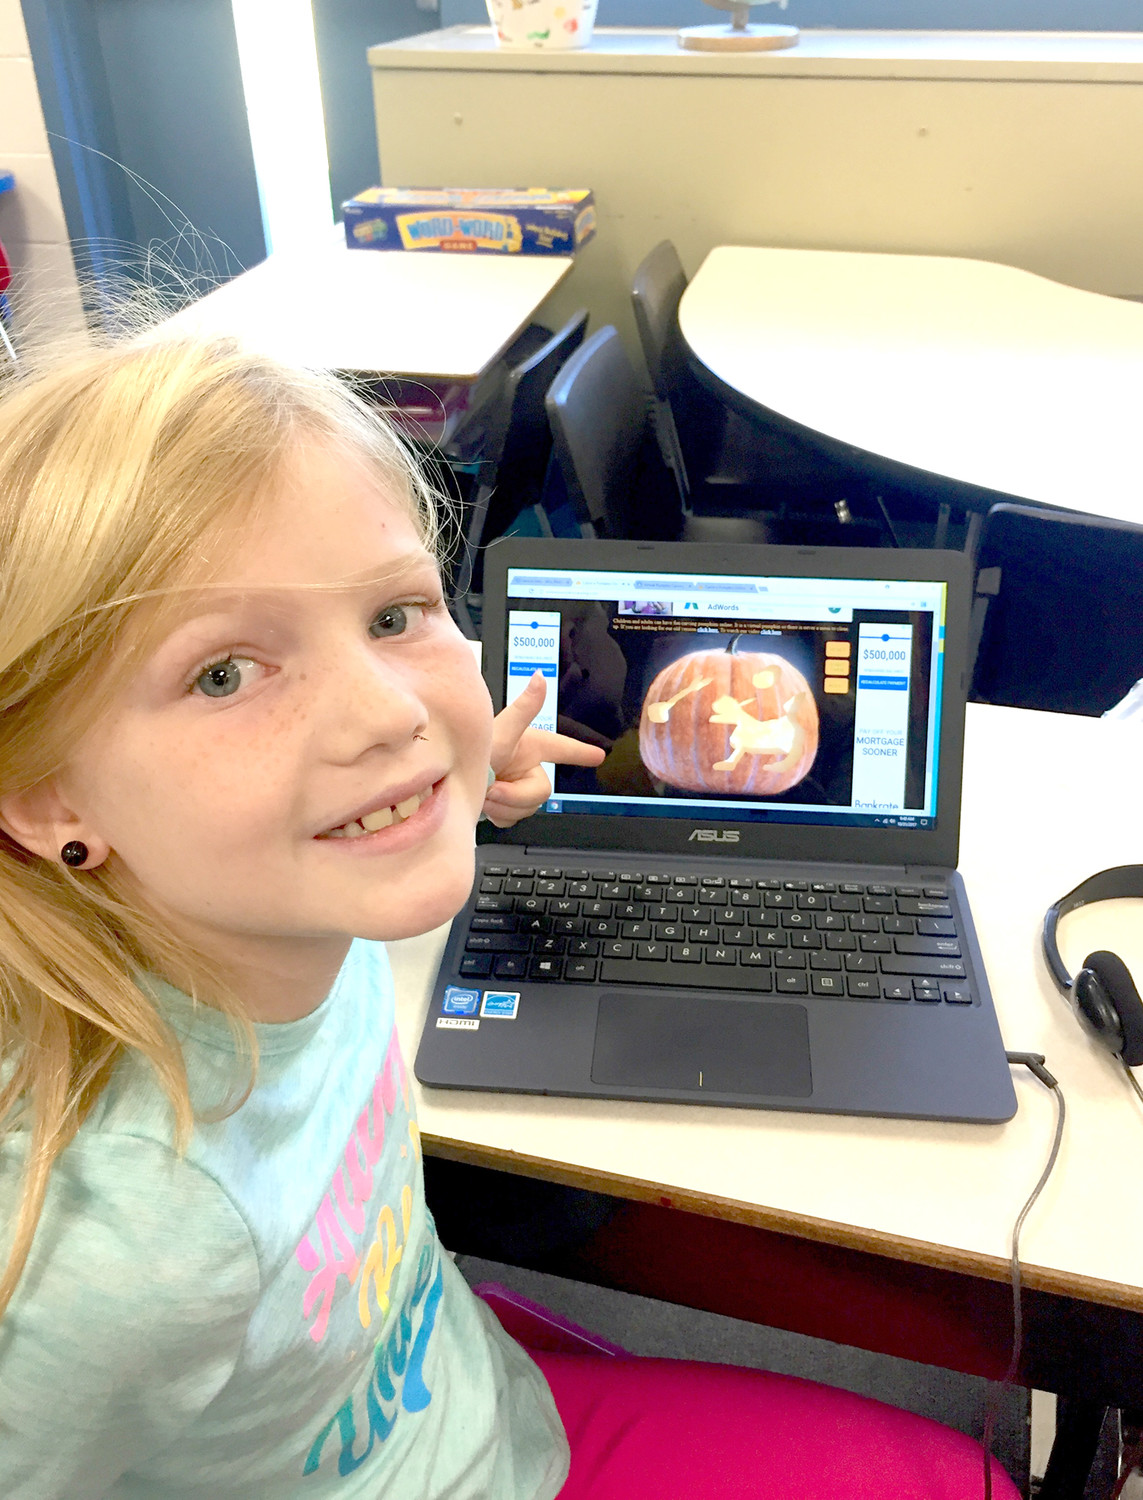 [DIGITAL JACK-O-LANTERN]